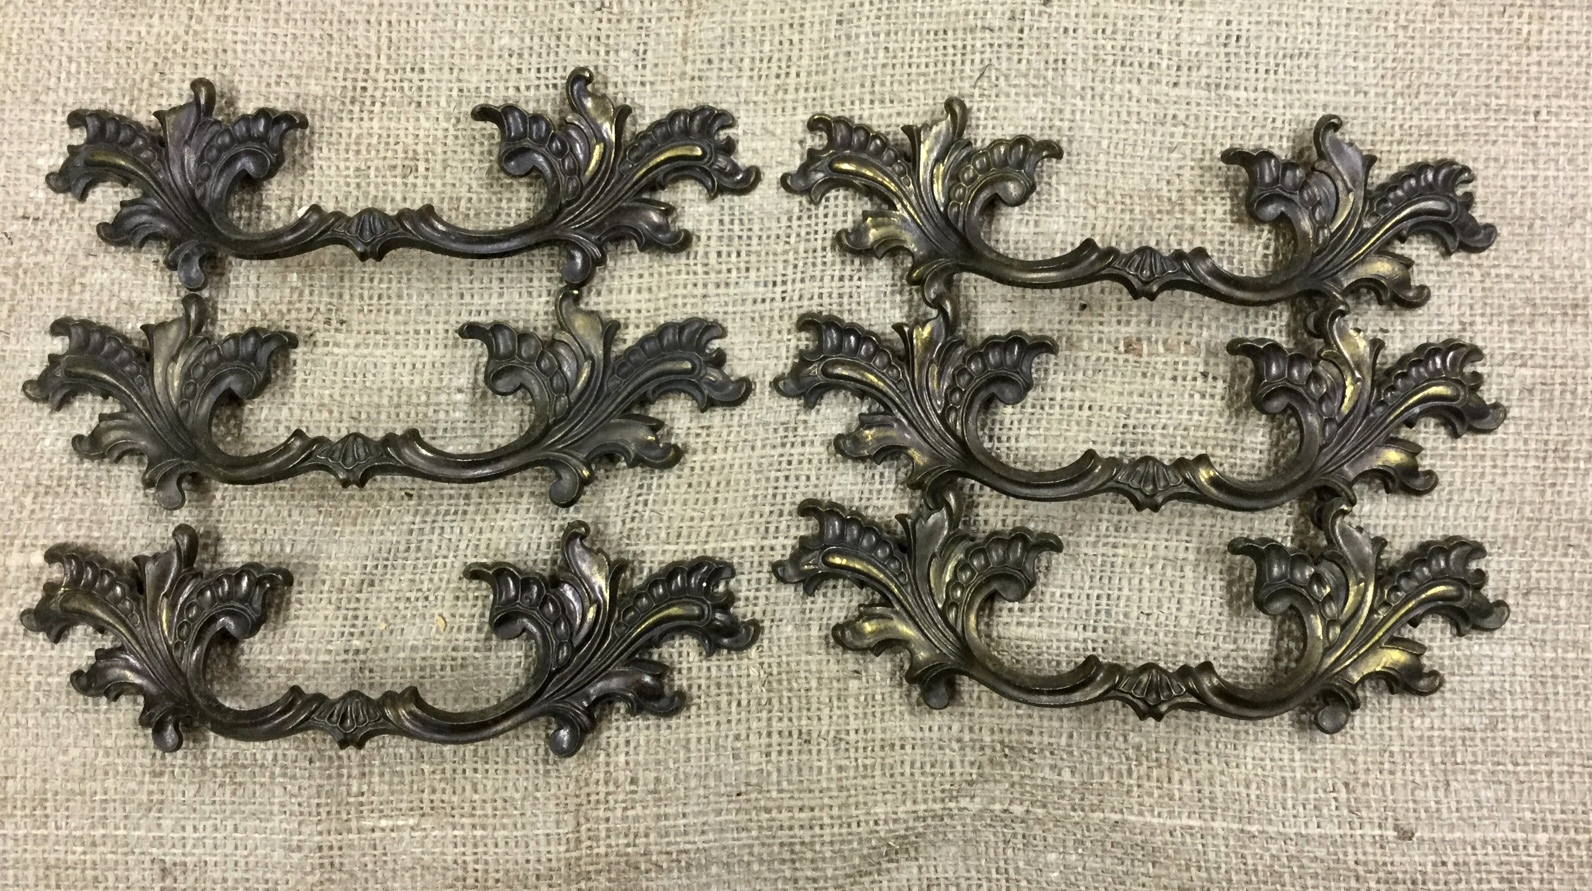 Vintage French Provencial Drawer Pull Set FREE SHIPPING